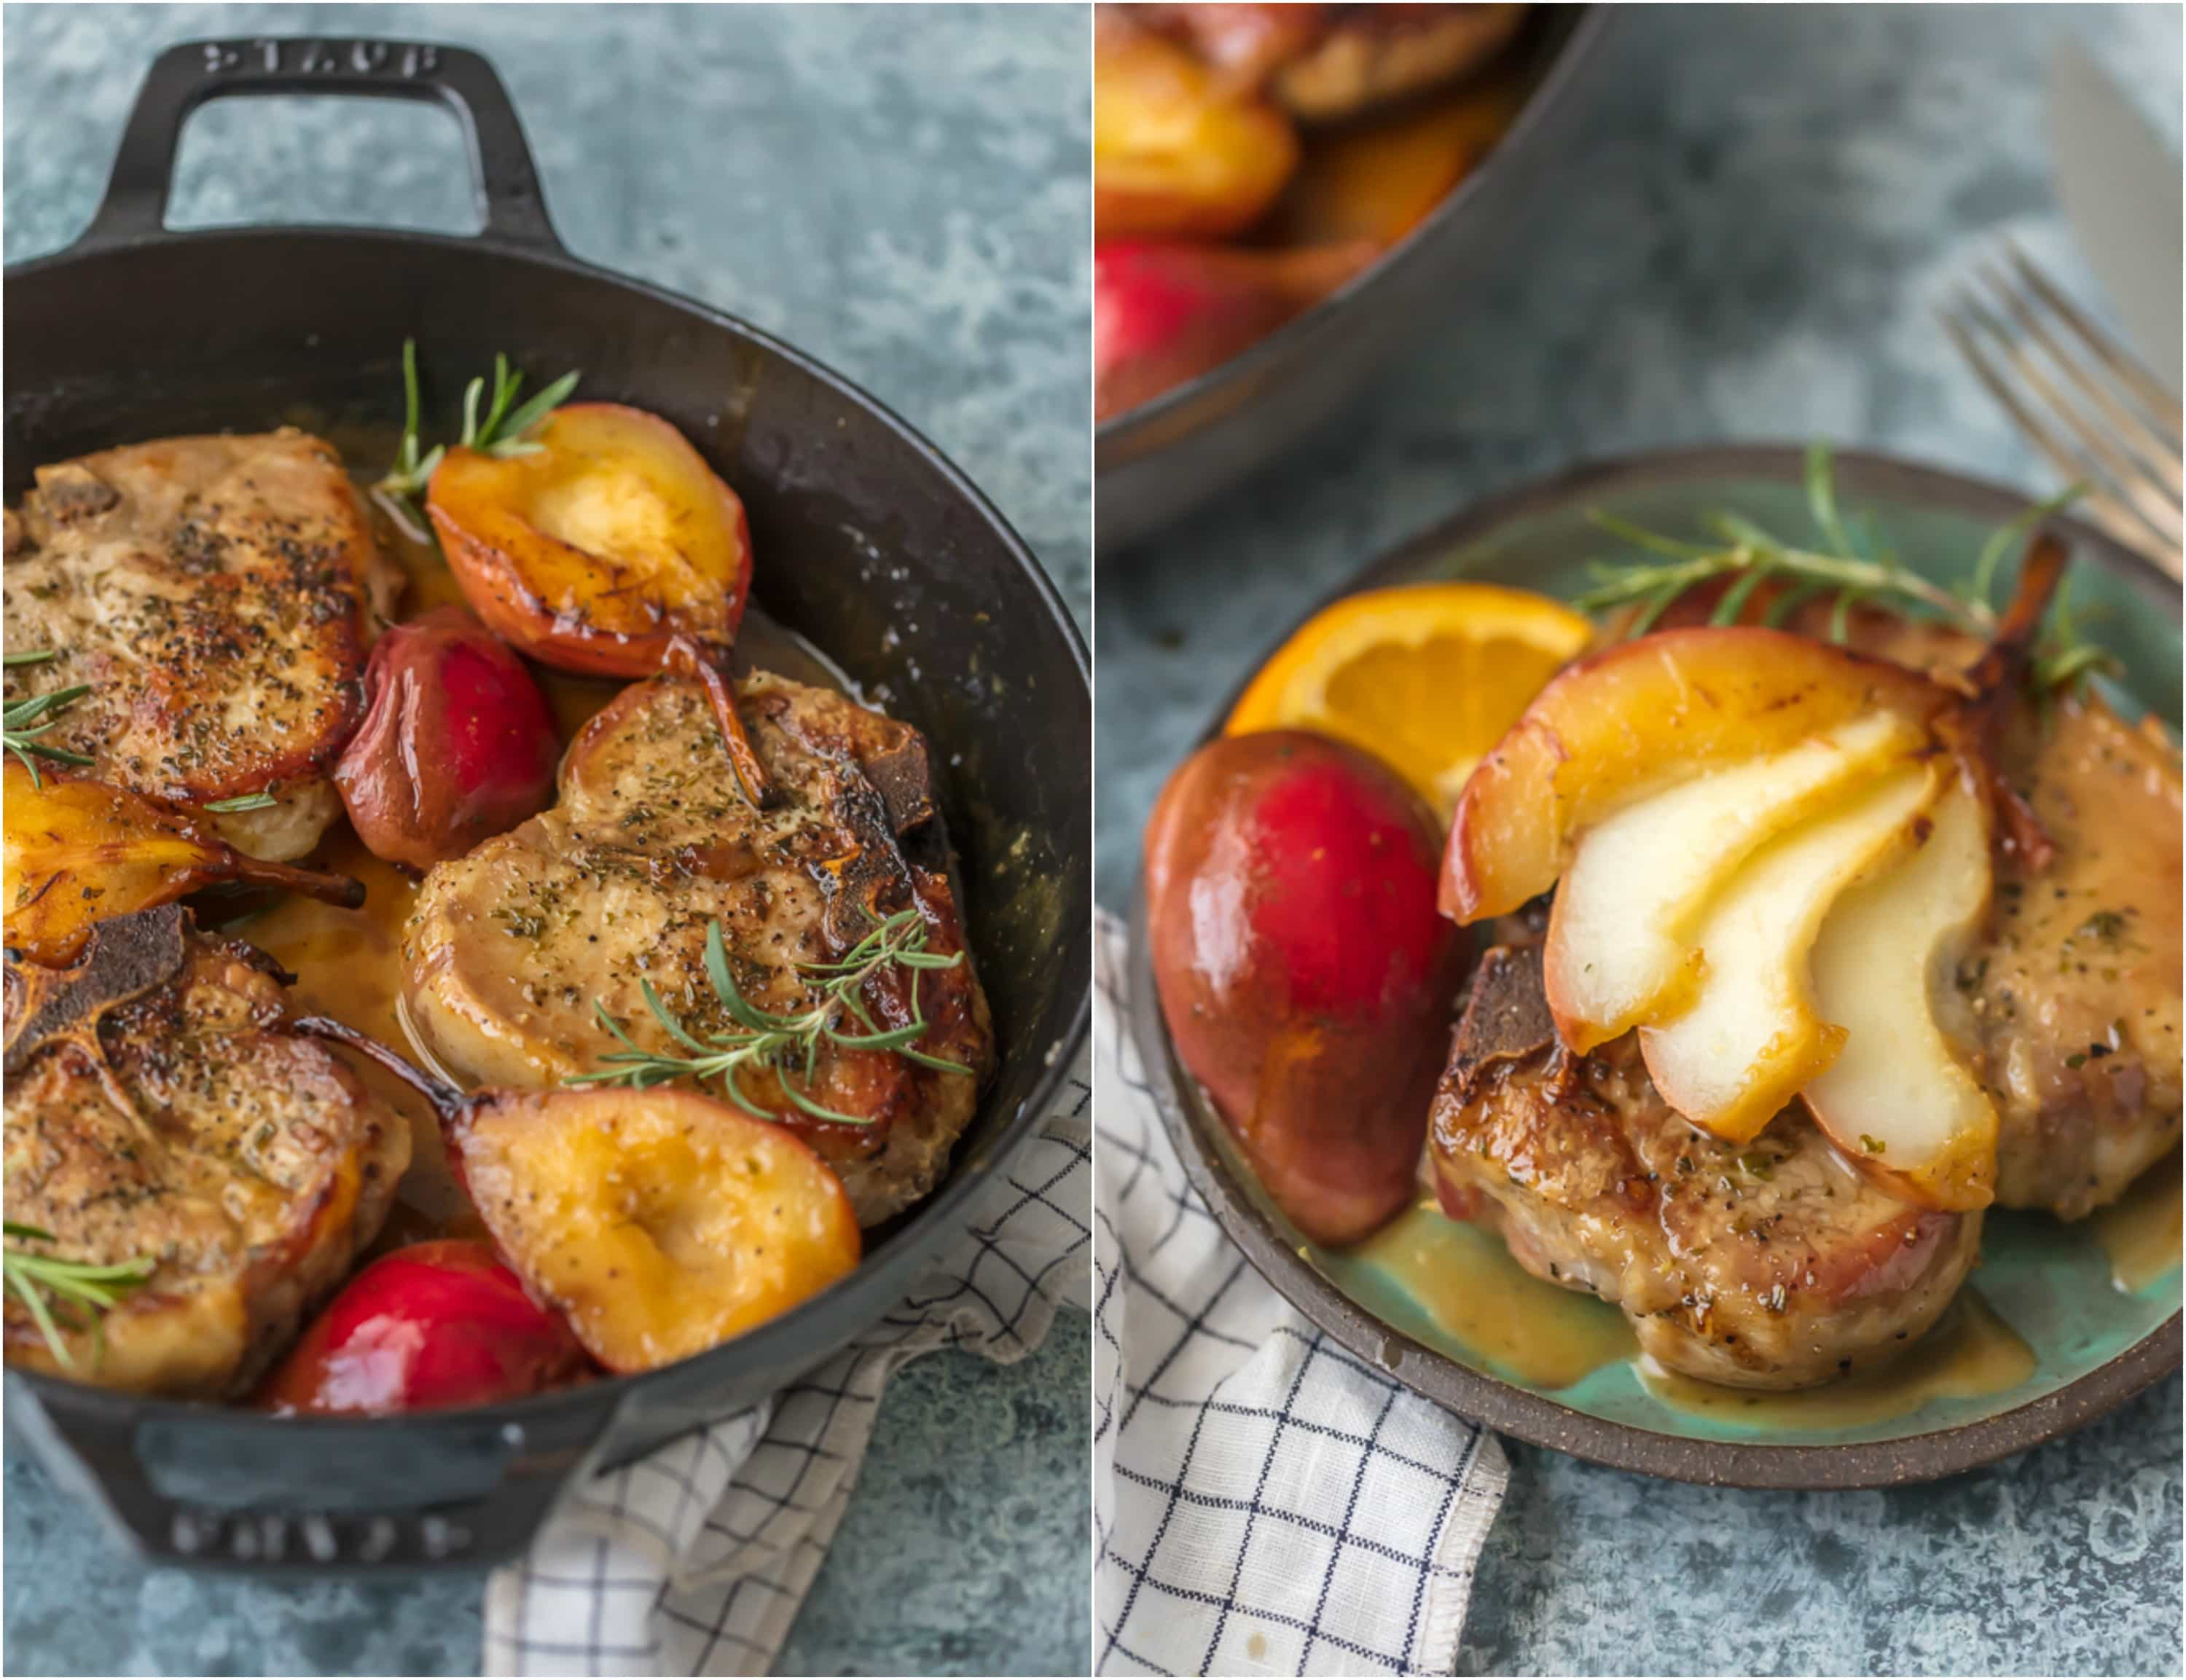 Honey Pork Chops with Pears and Bourbon in skillet and on plate